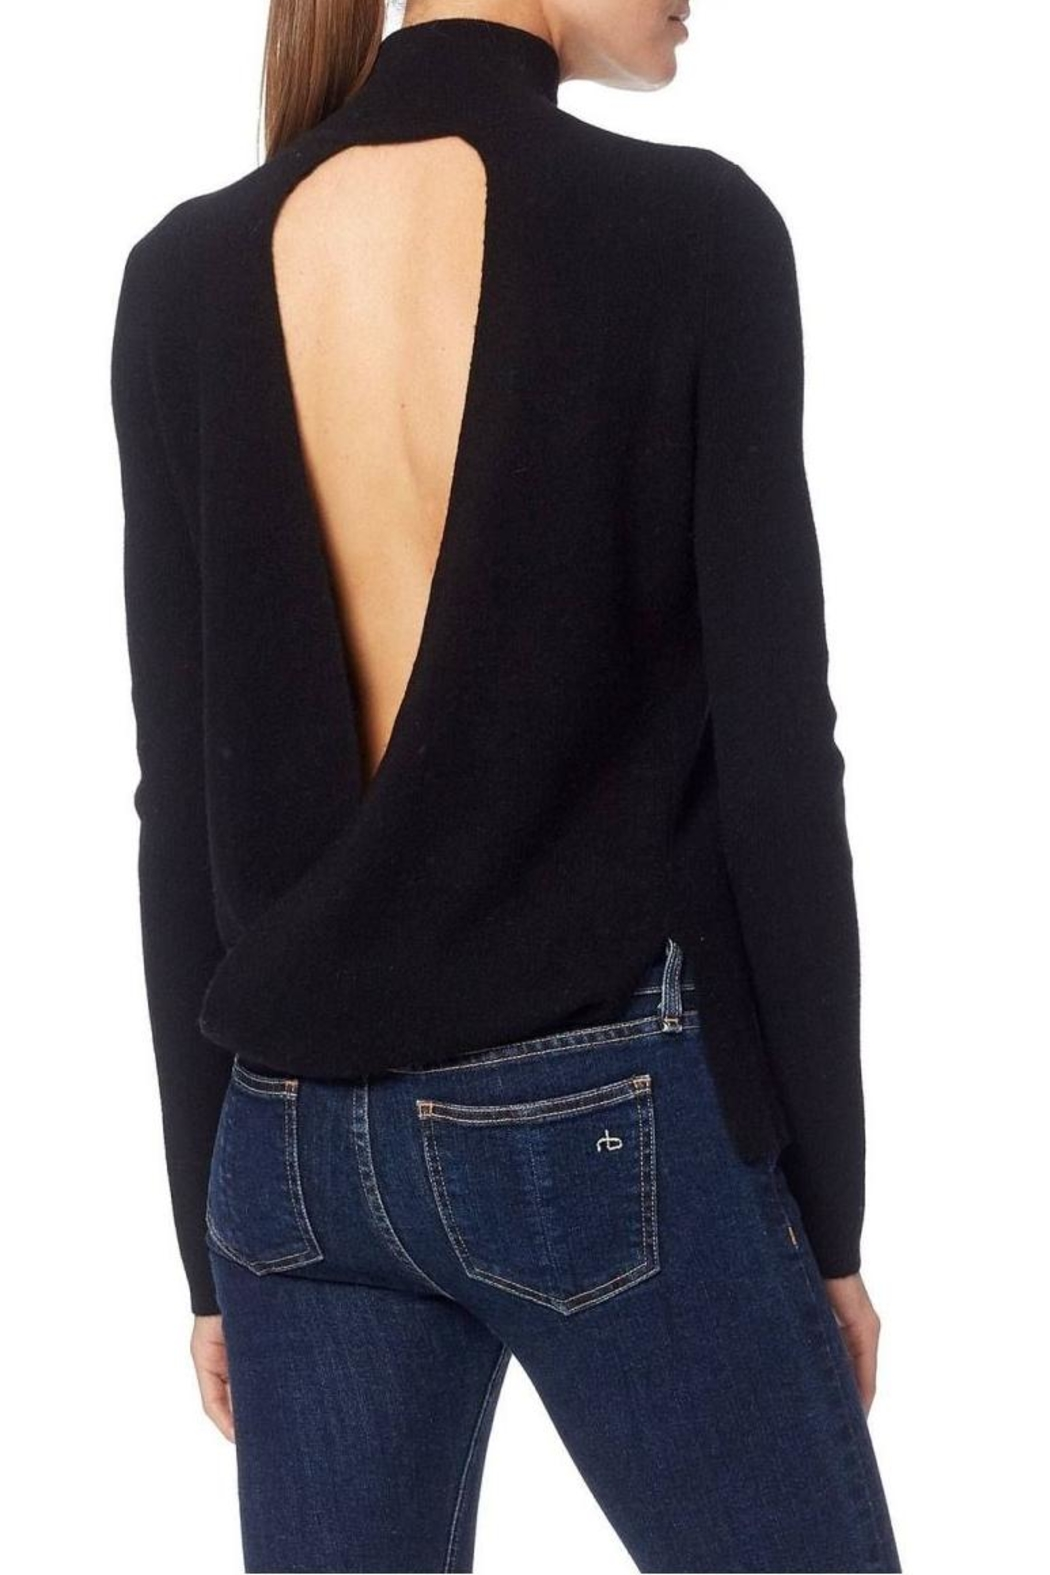 360 Cashmere Open-Back Turtleneck Sweater - Side Cropped Image